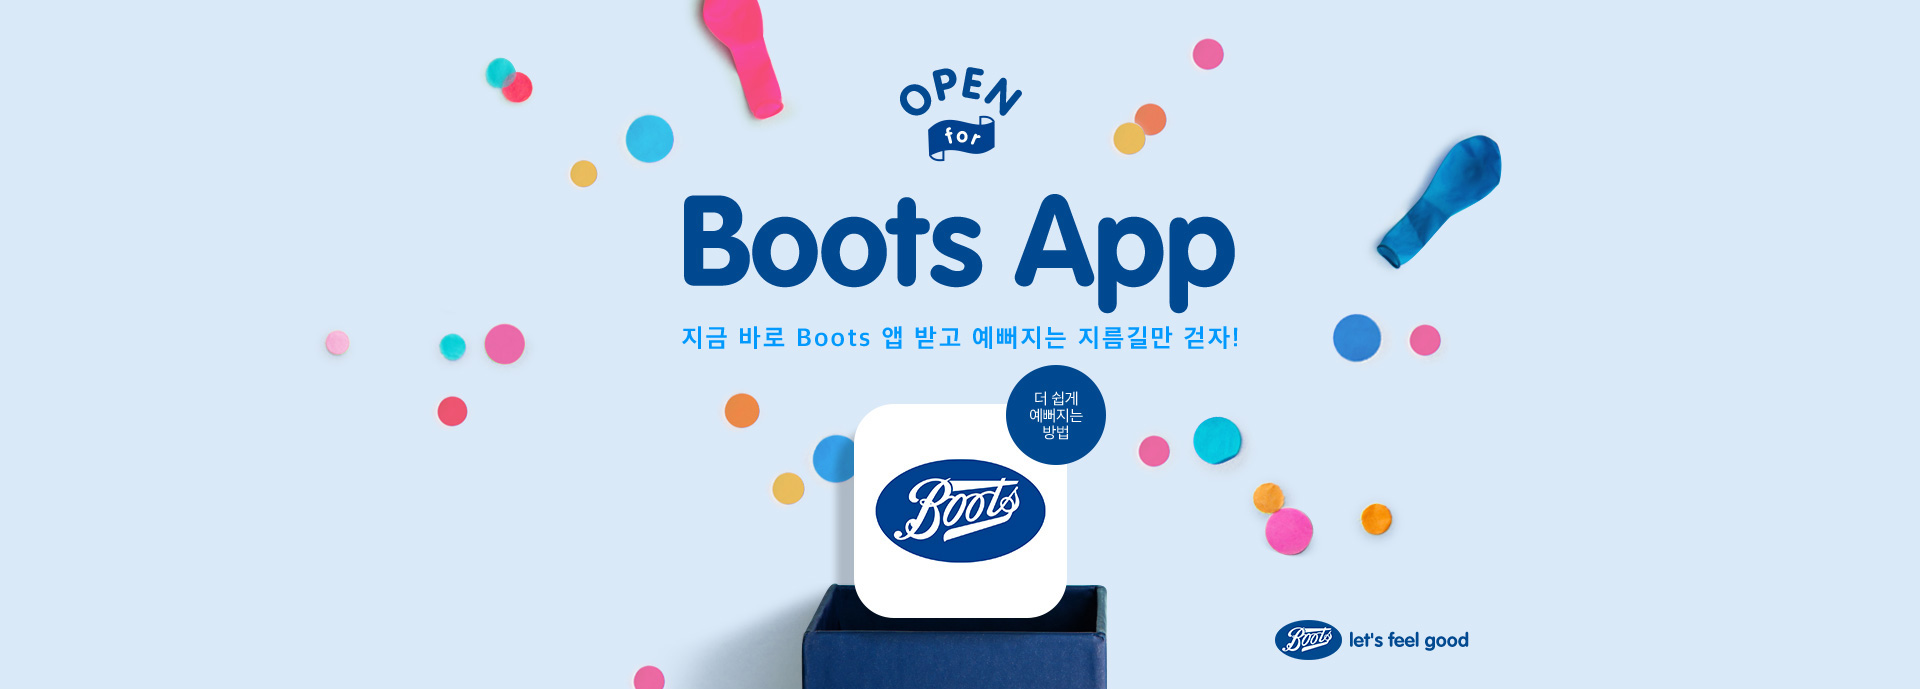 Boots App